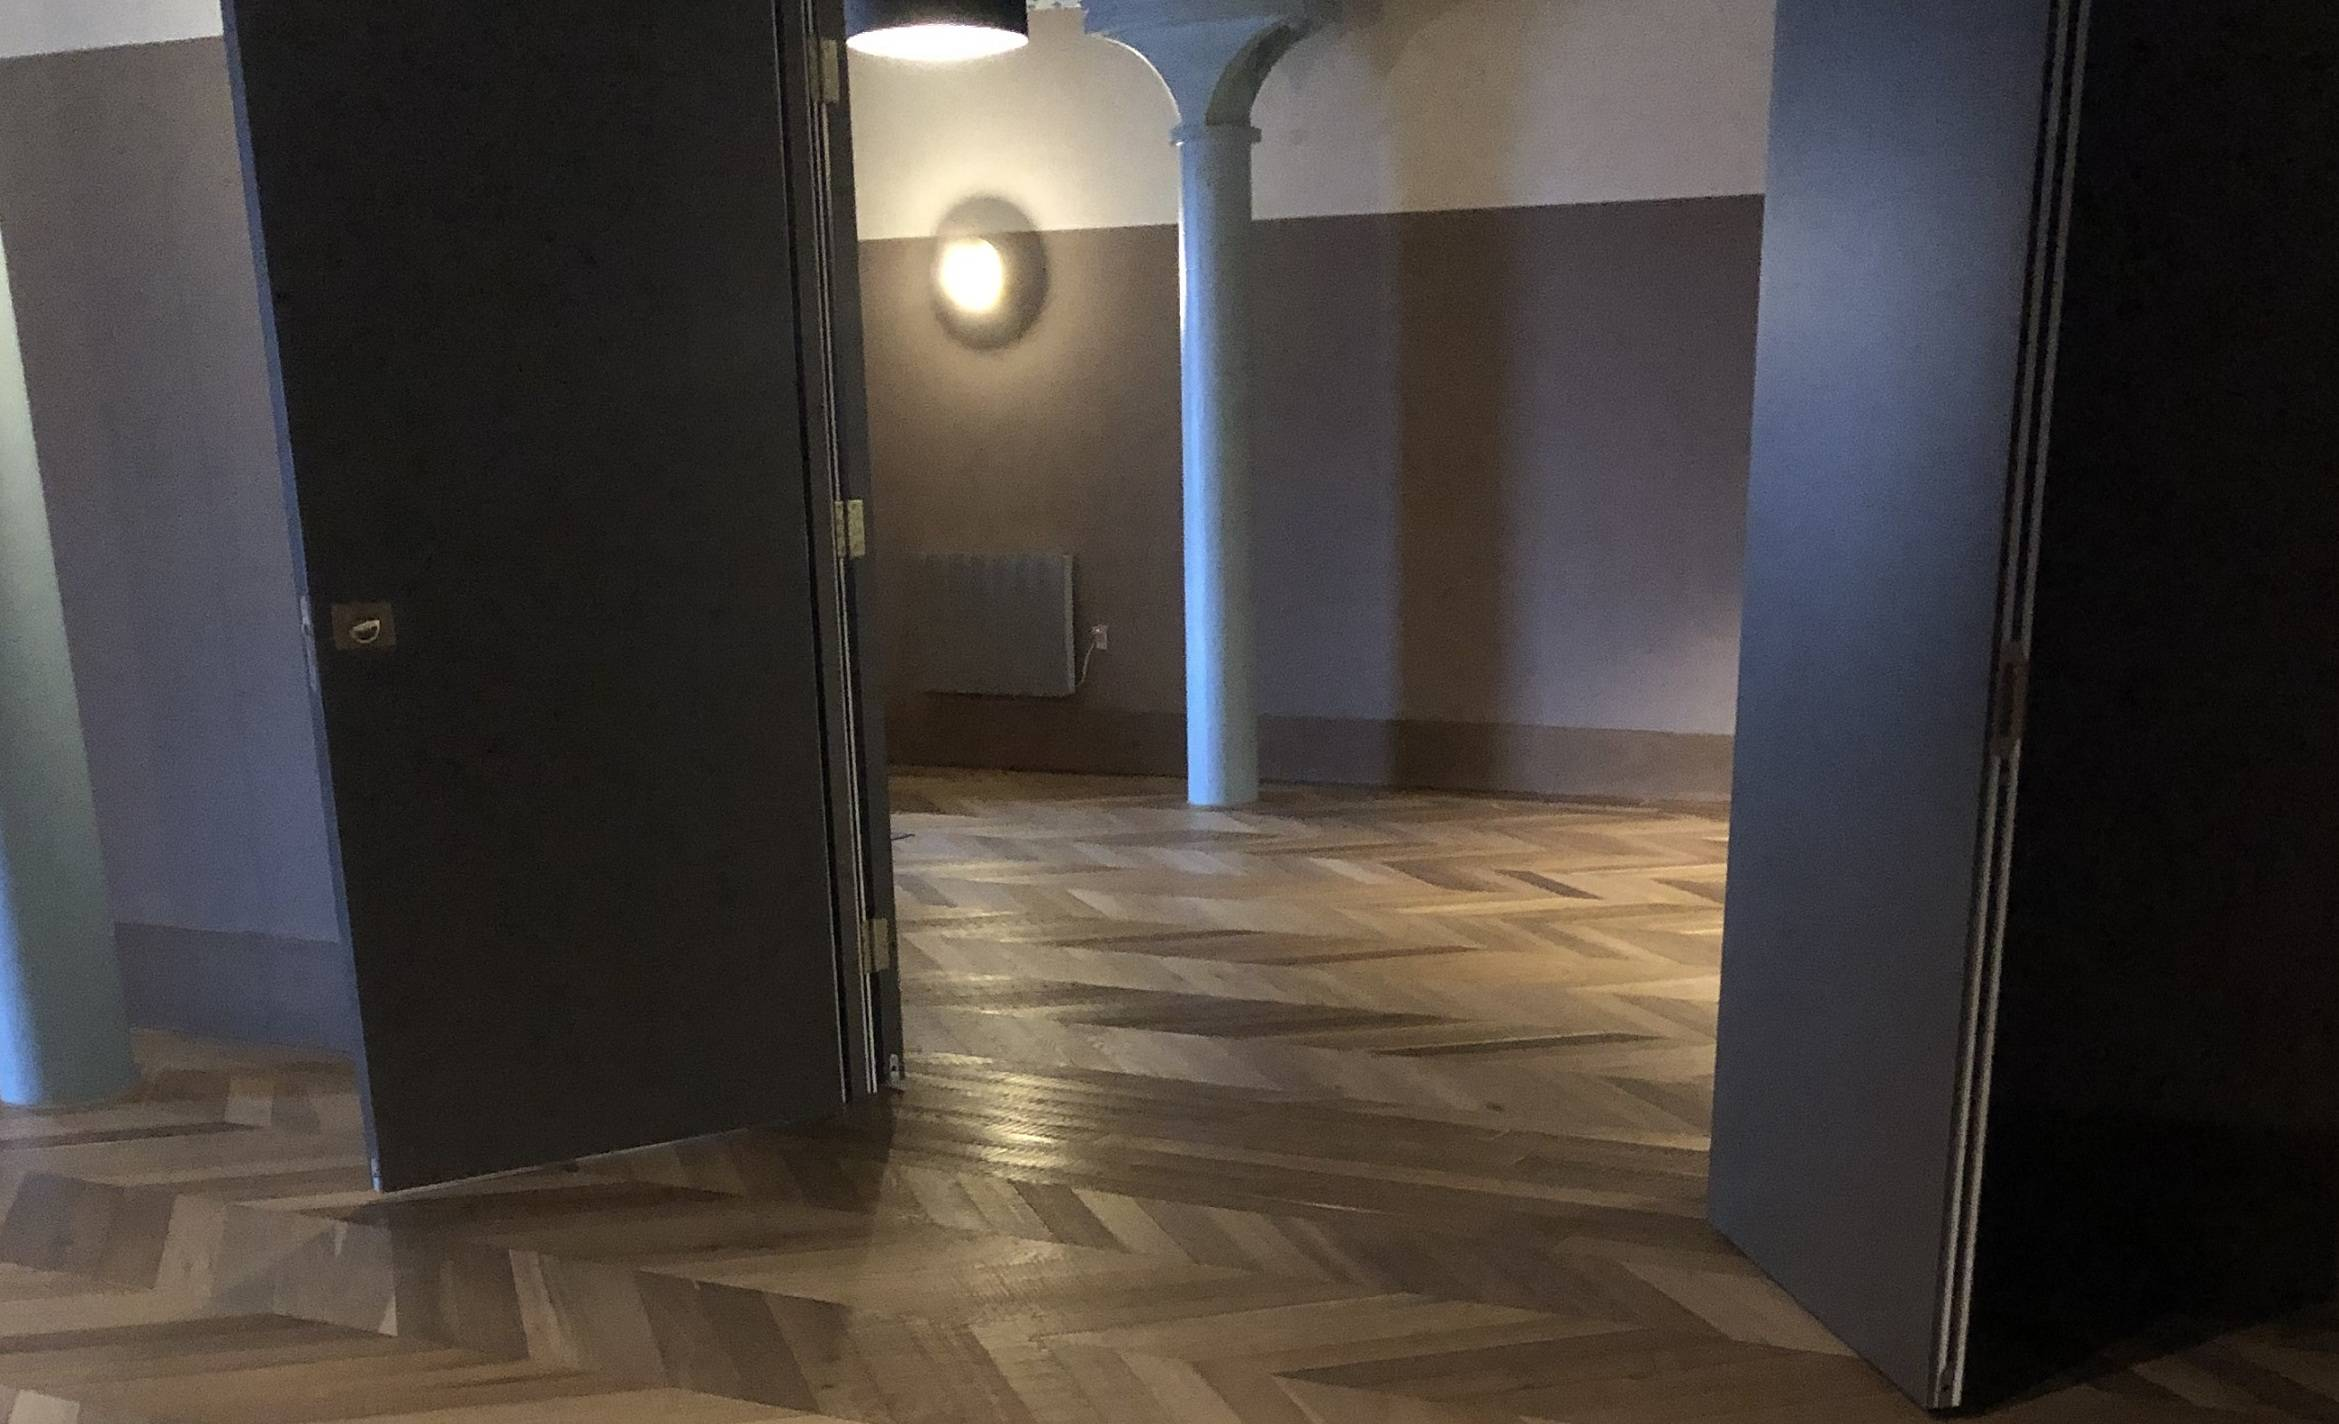 Deep Fumed band sawn chevron oak parquet flooring in the Apart Hotel Manchester